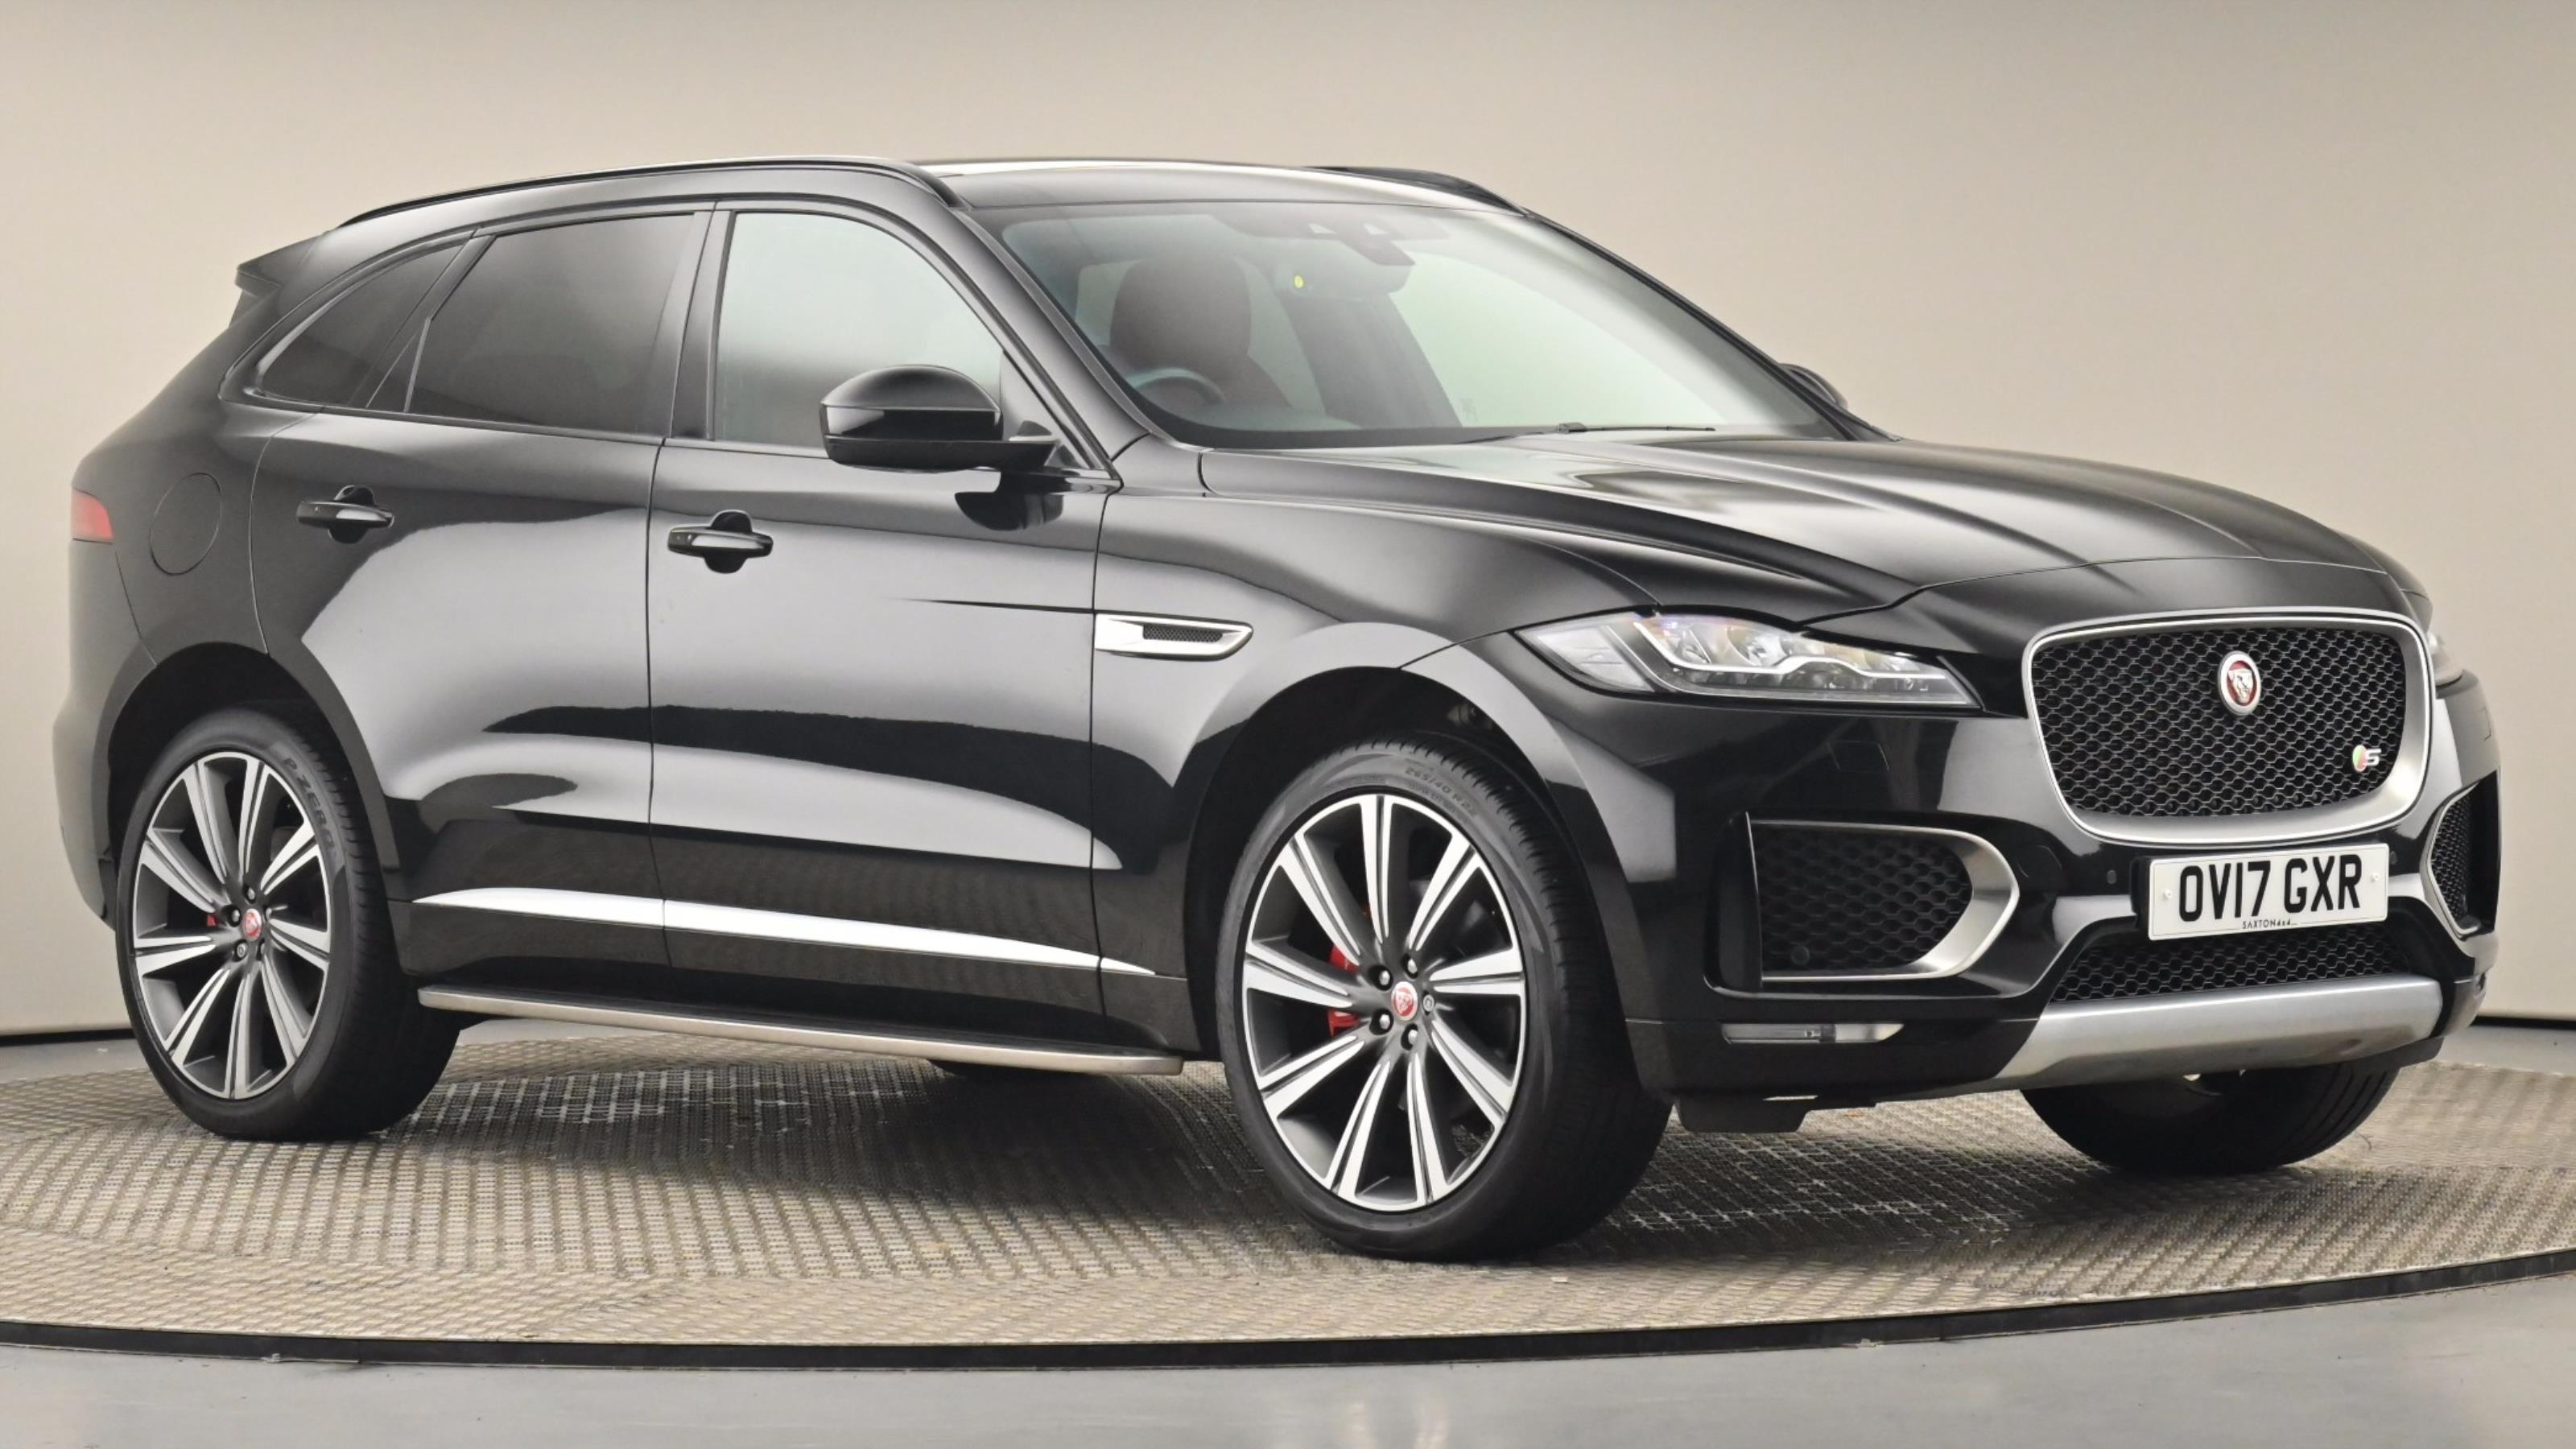 Used 2017 Jaguar F-PACE 3.0 Supercharged V6 S 5dr Auto AWD BLACK at Saxton4x4